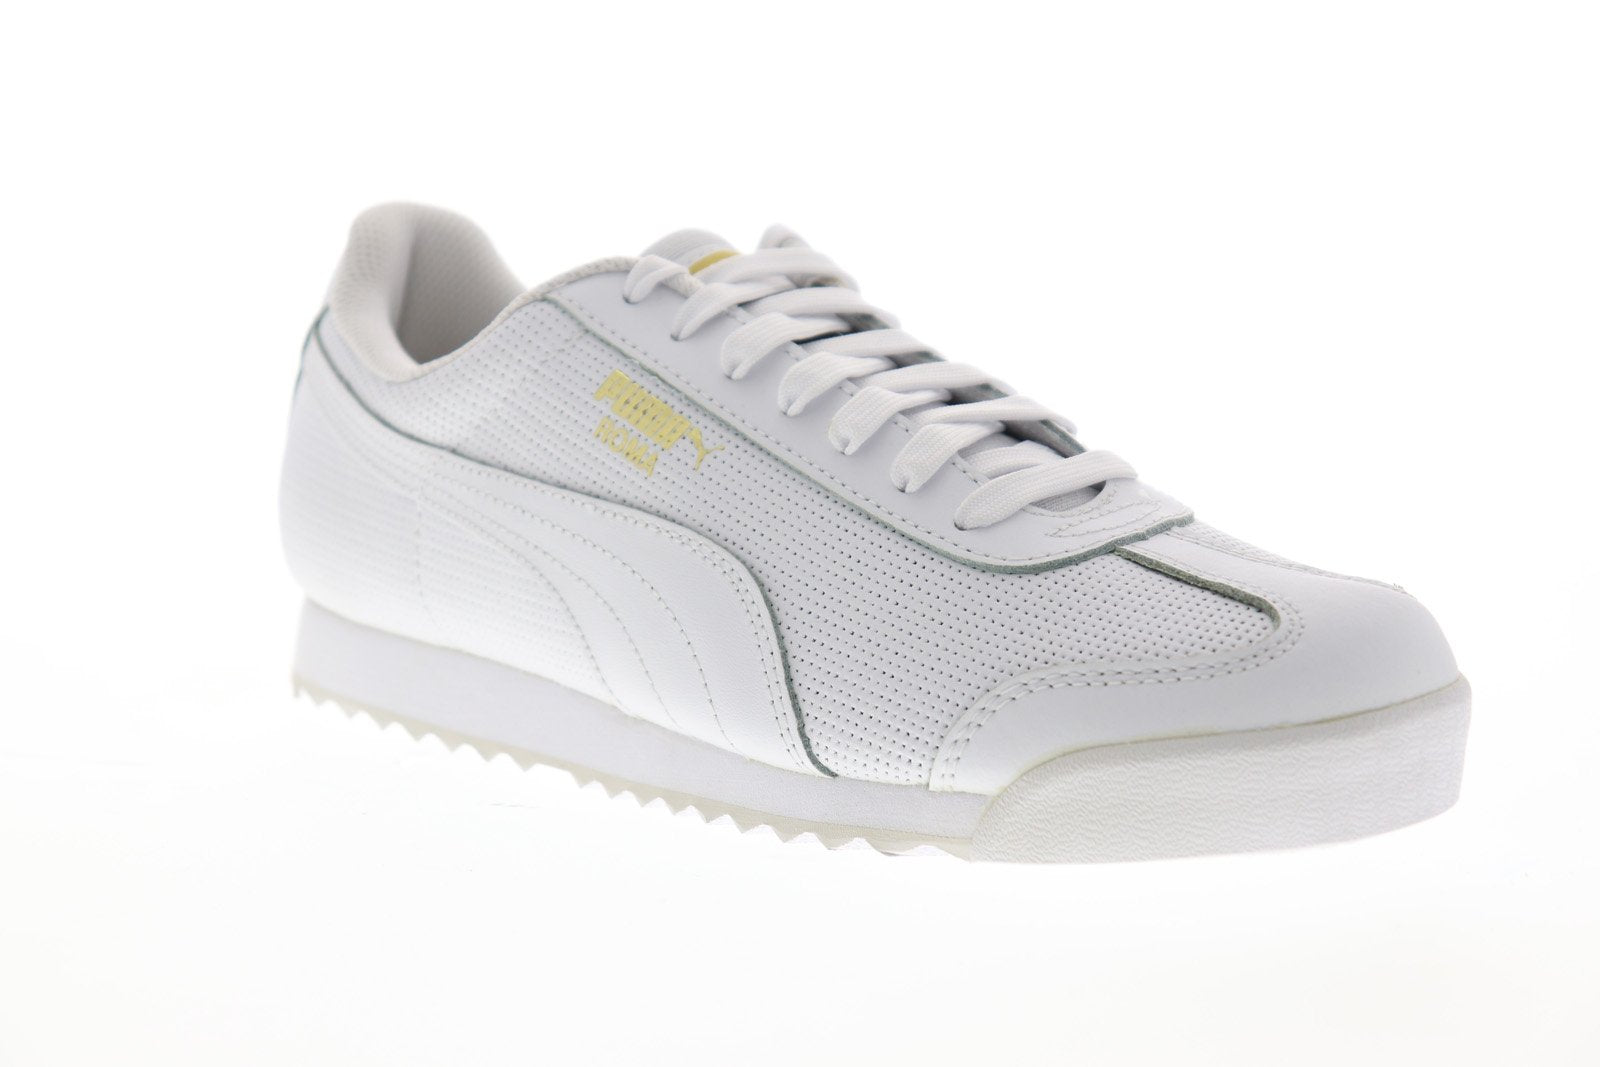 the latest 1591d c3caf Puma Roma Classic Perf Mens White Leather Low Top Lace Up Sneakers Shoes